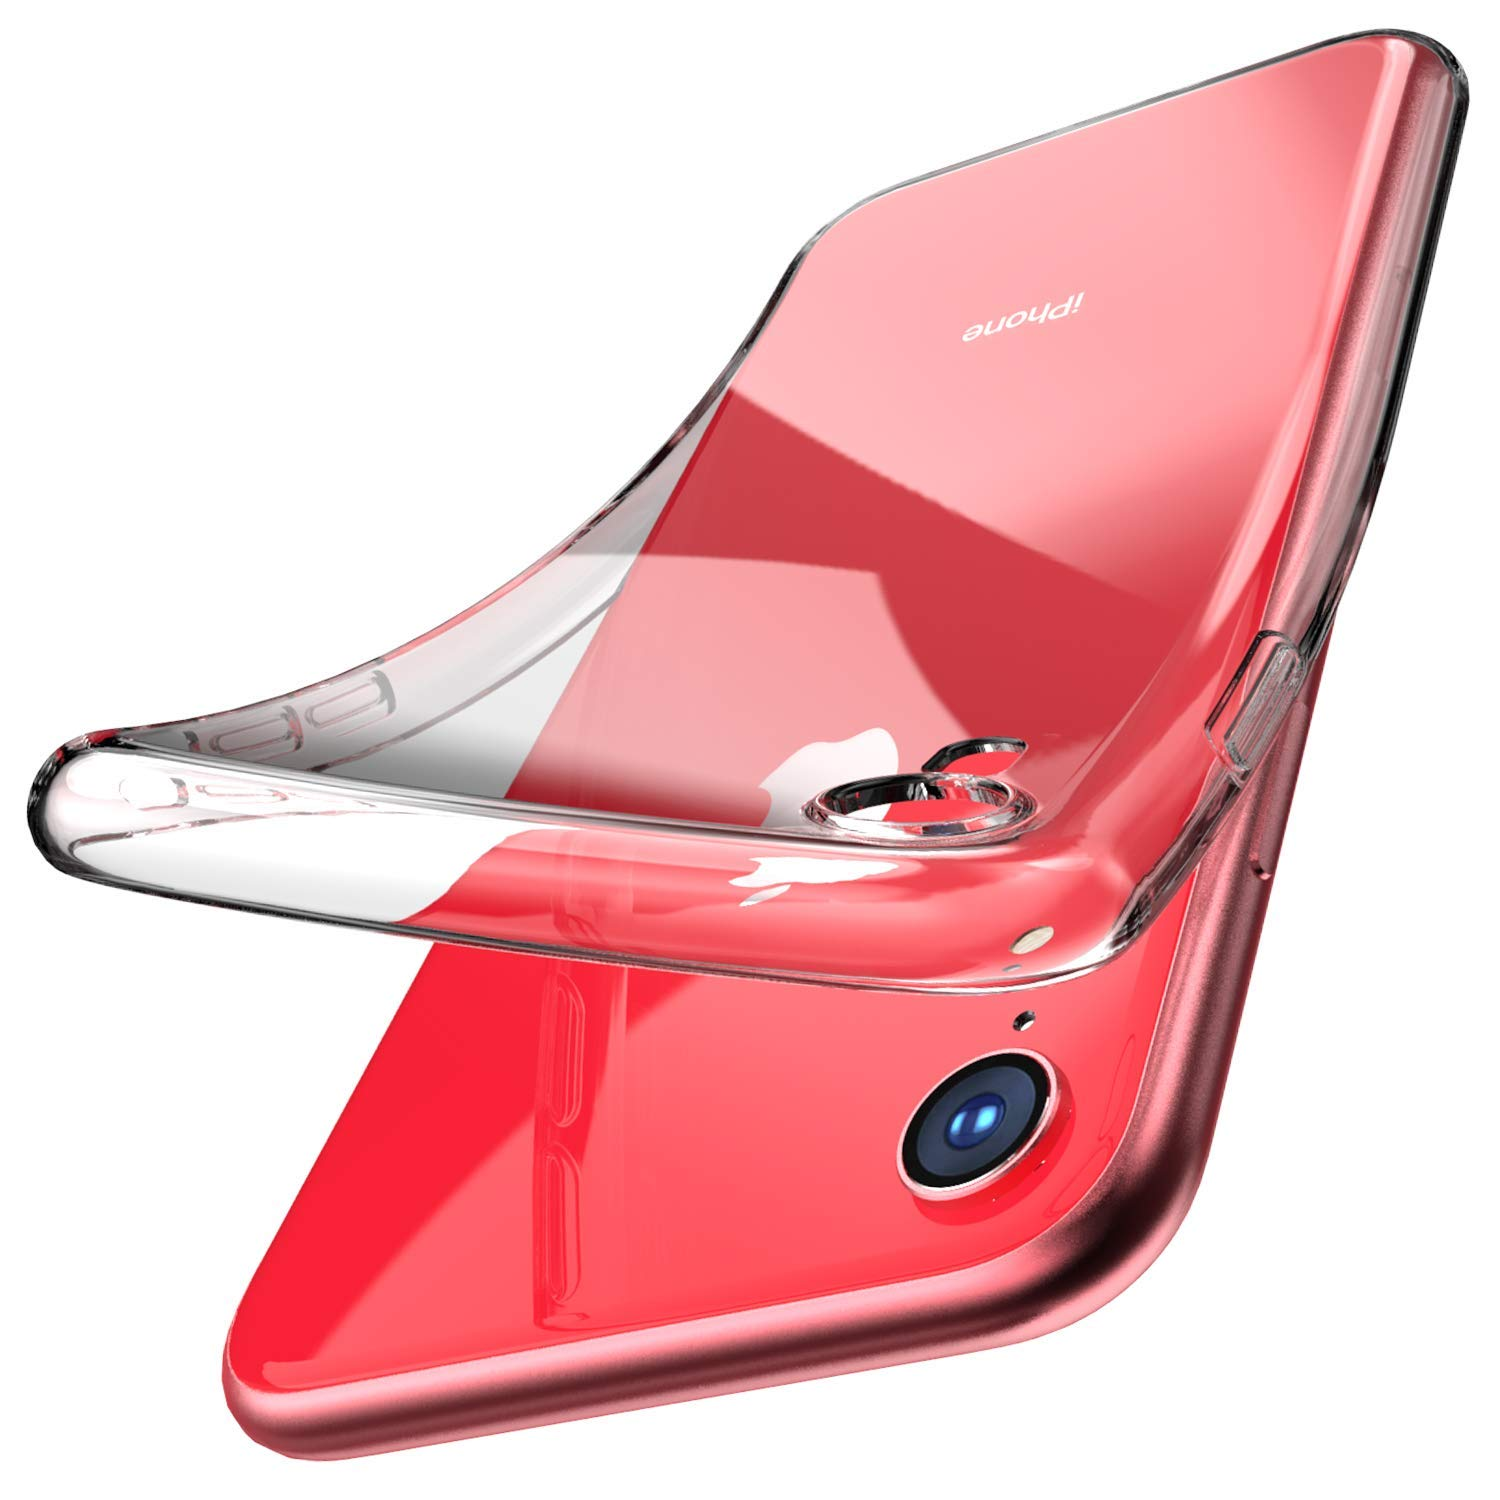 Slim Thin Clear Soft For <font><b>iPhone</b></font> XR XS Max X <font><b>Case</b></font> Premium Flexible Chrome <font><b>Bumper</b></font> Transparent TPU Back Plate Cover For <font><b>iPhone</b></font> 8 7 image